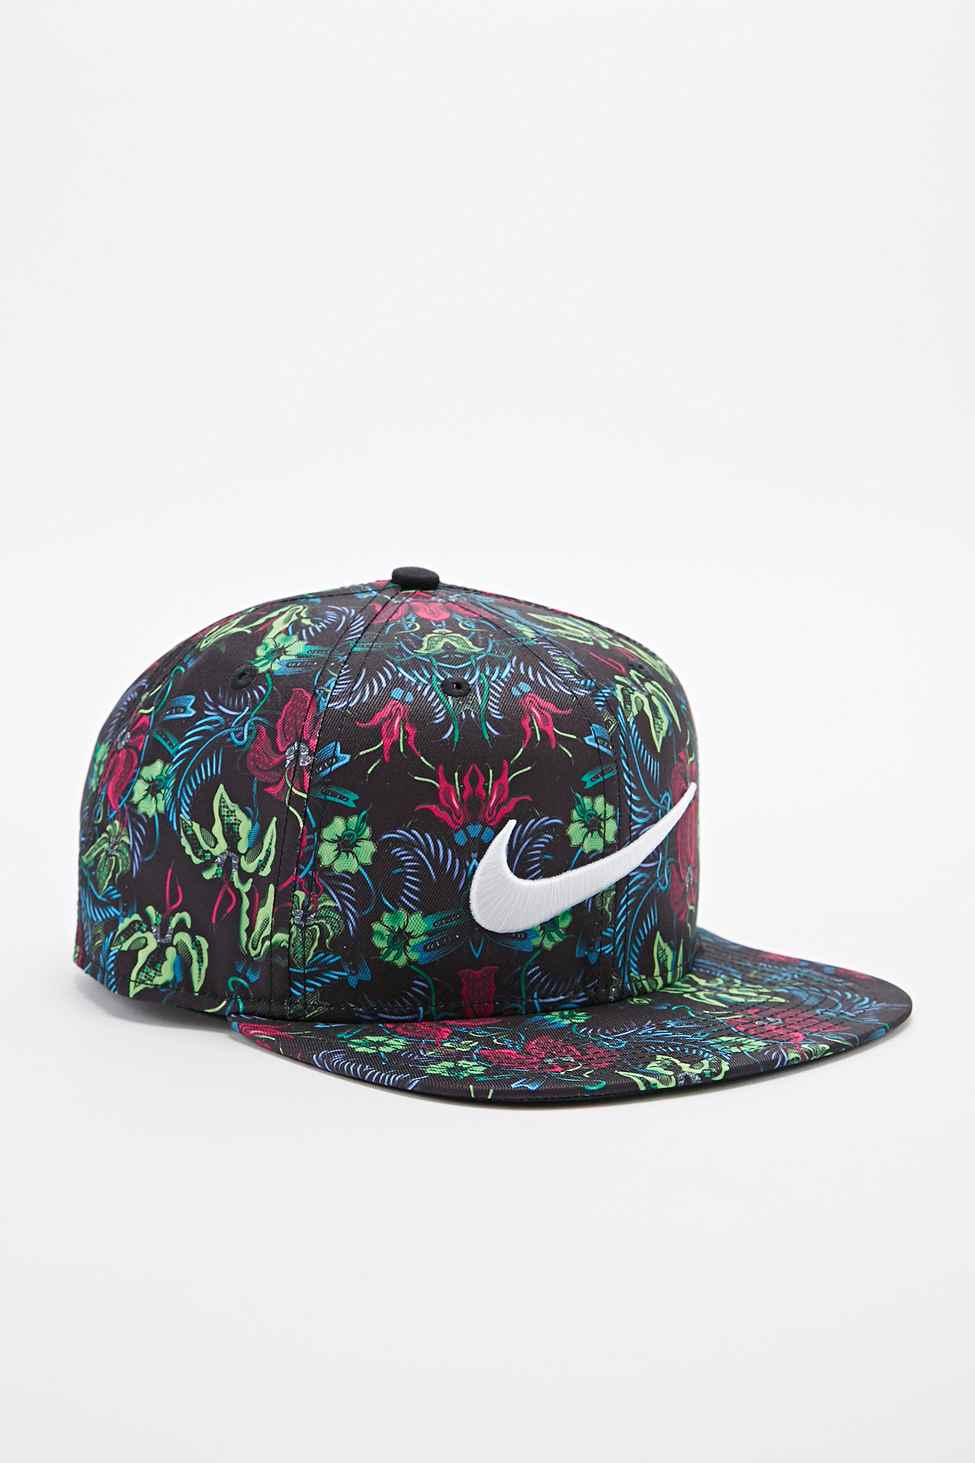 Nike Pro Floral Snapback Cap In Green And Pink for Men - Lyst 2cf88bda32e